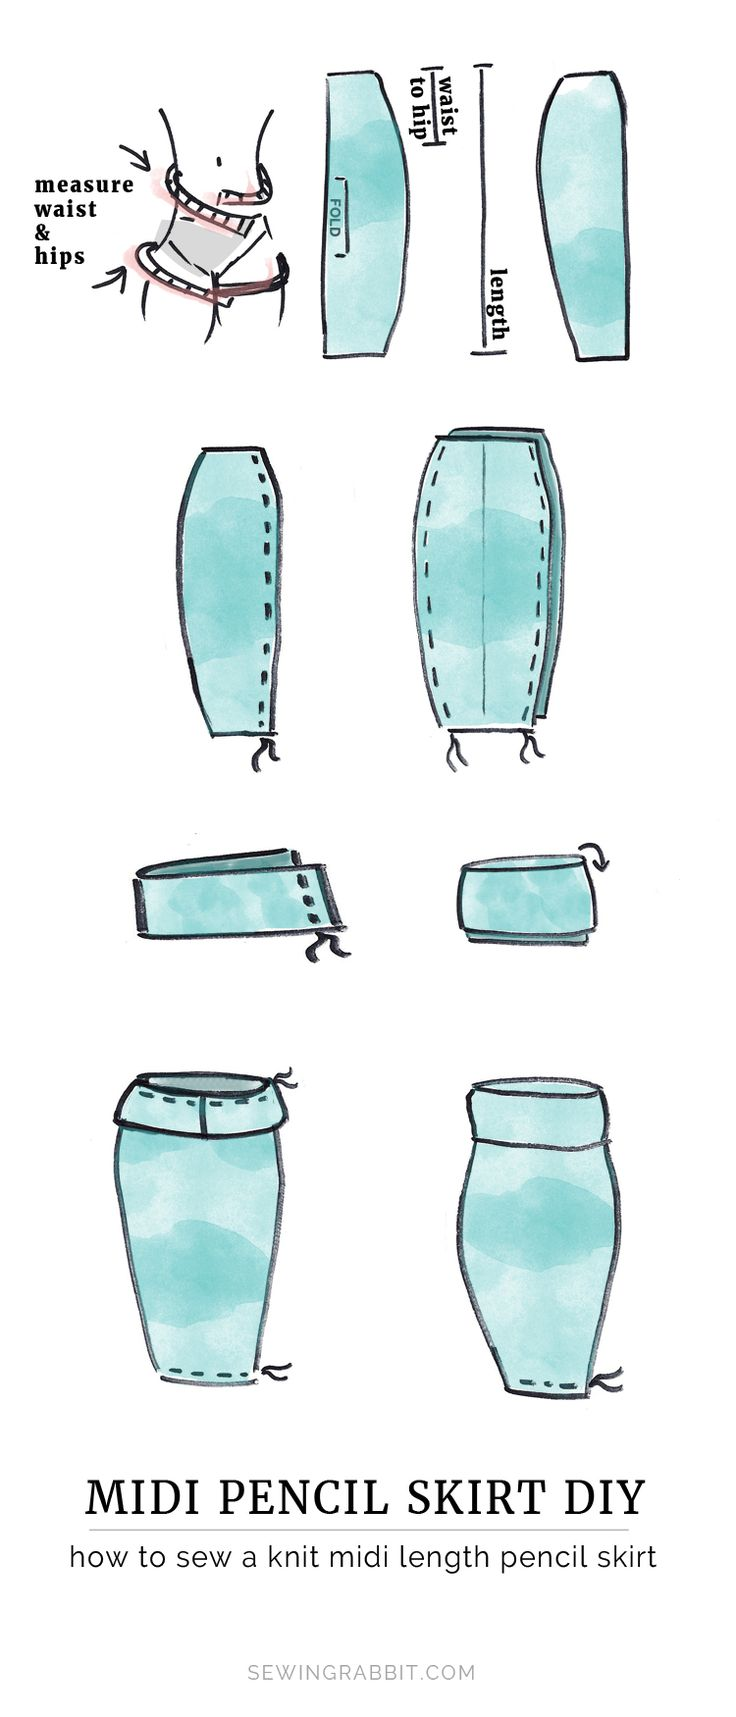 How to sew a midi pencil skirt || Midi Pencil Skirt DIY Casual cool DIY chic this Summer